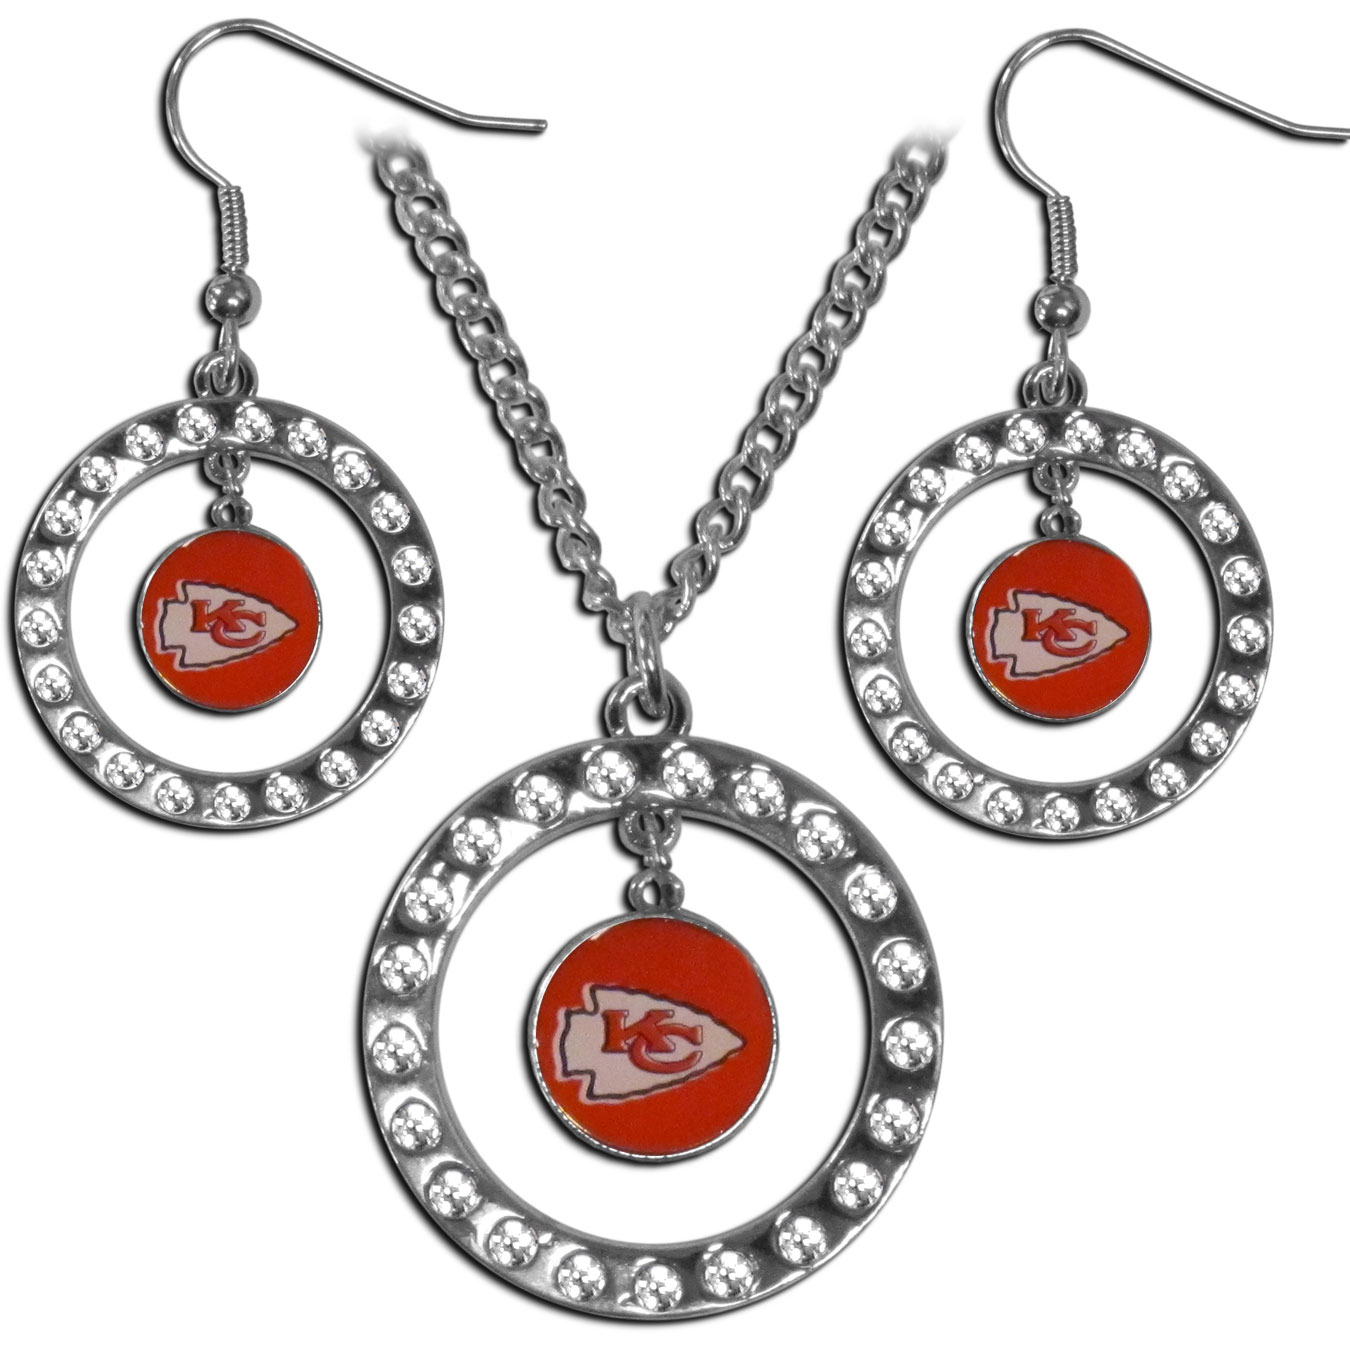 Kansas City Chiefs Rhinestone Hoop Jewelry Set - This officially licensed Kansas City Chiefs jewelry set includes our rhinestone hoop earrings and pendant in a gift box. The 1 inch rhinestone hoop pendant comes on an 18 inch chain and is paired with the matching dangle hoop earrings.